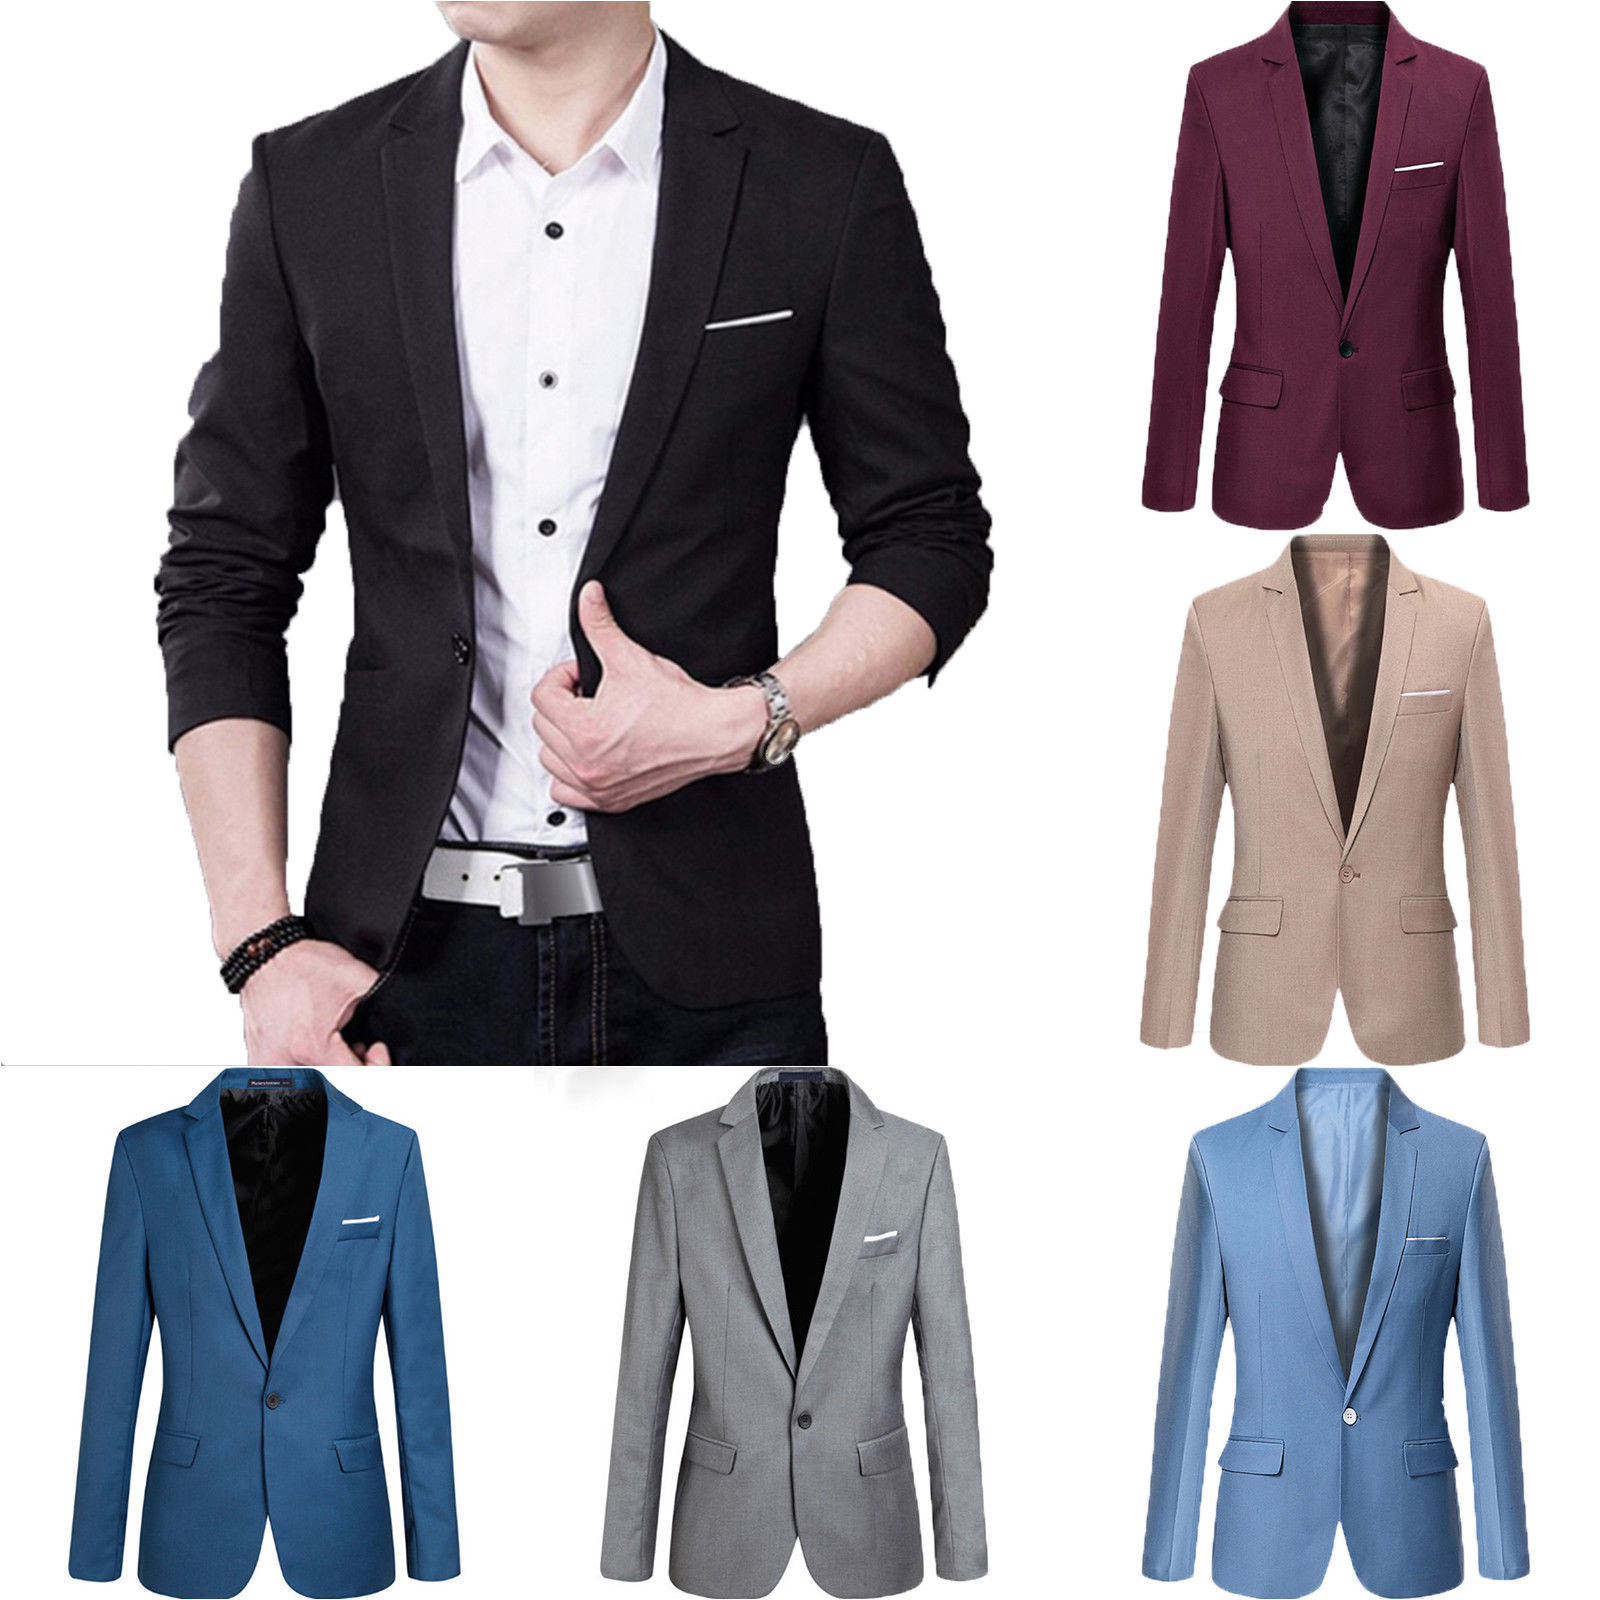 d7cb01fab3e Hot Sale Fashion Men Casual Solid Slim Fit Formal One Button Suit Blazer  Coat Jacket Blazer